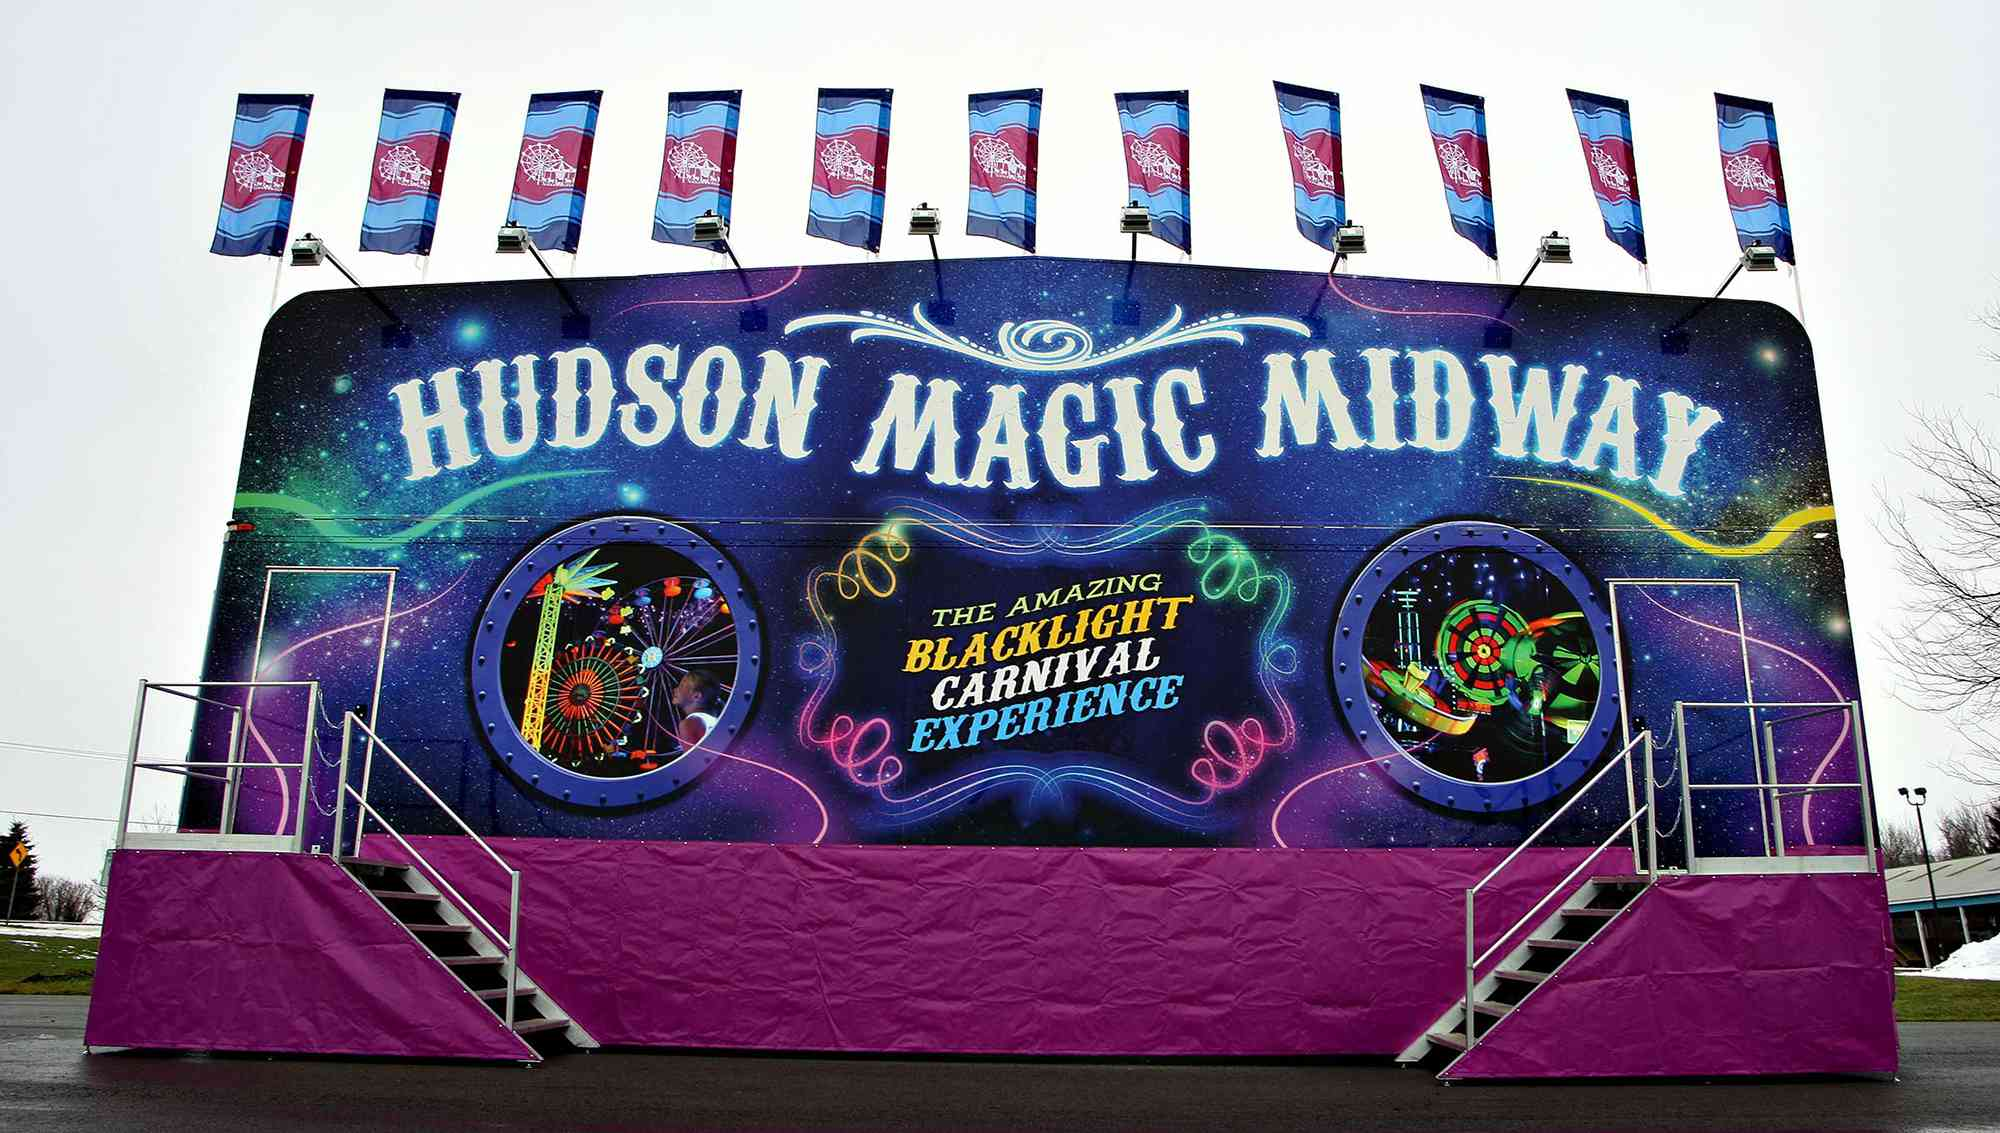 Hudson Magic Midway Image